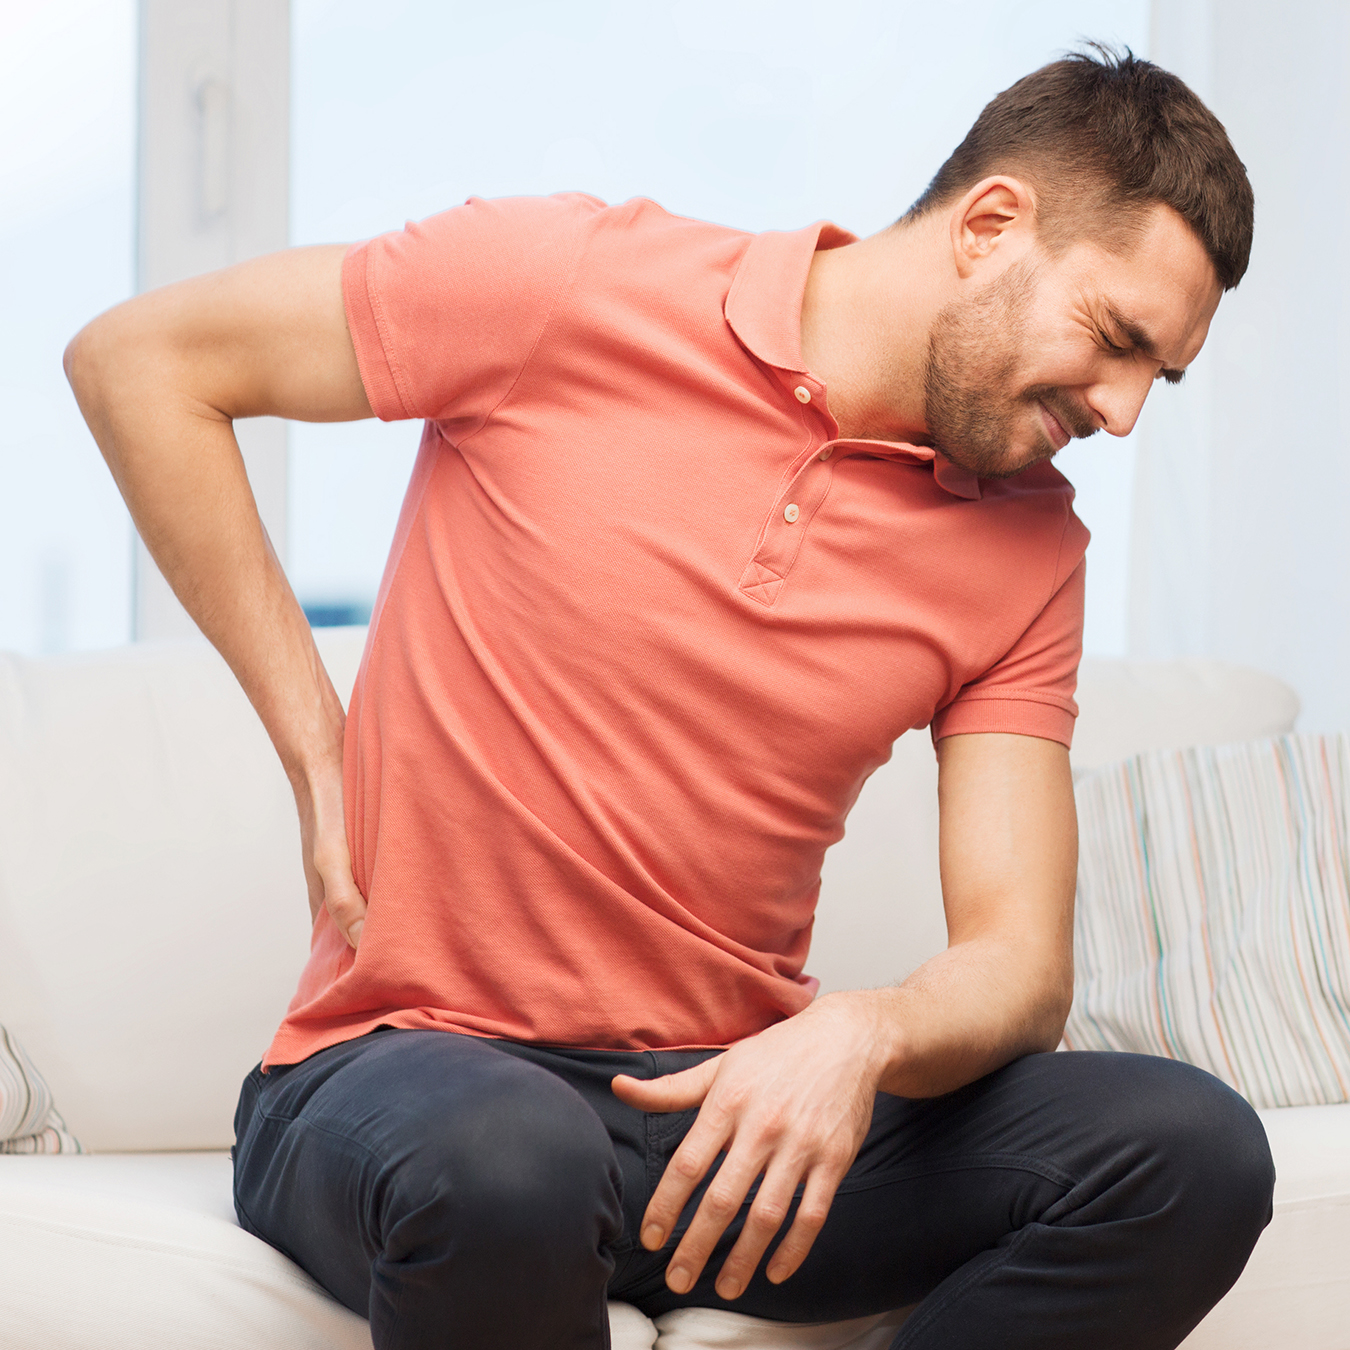 back pain treatment in pune|Spine clinic in pune|Best spine surgeon in pune